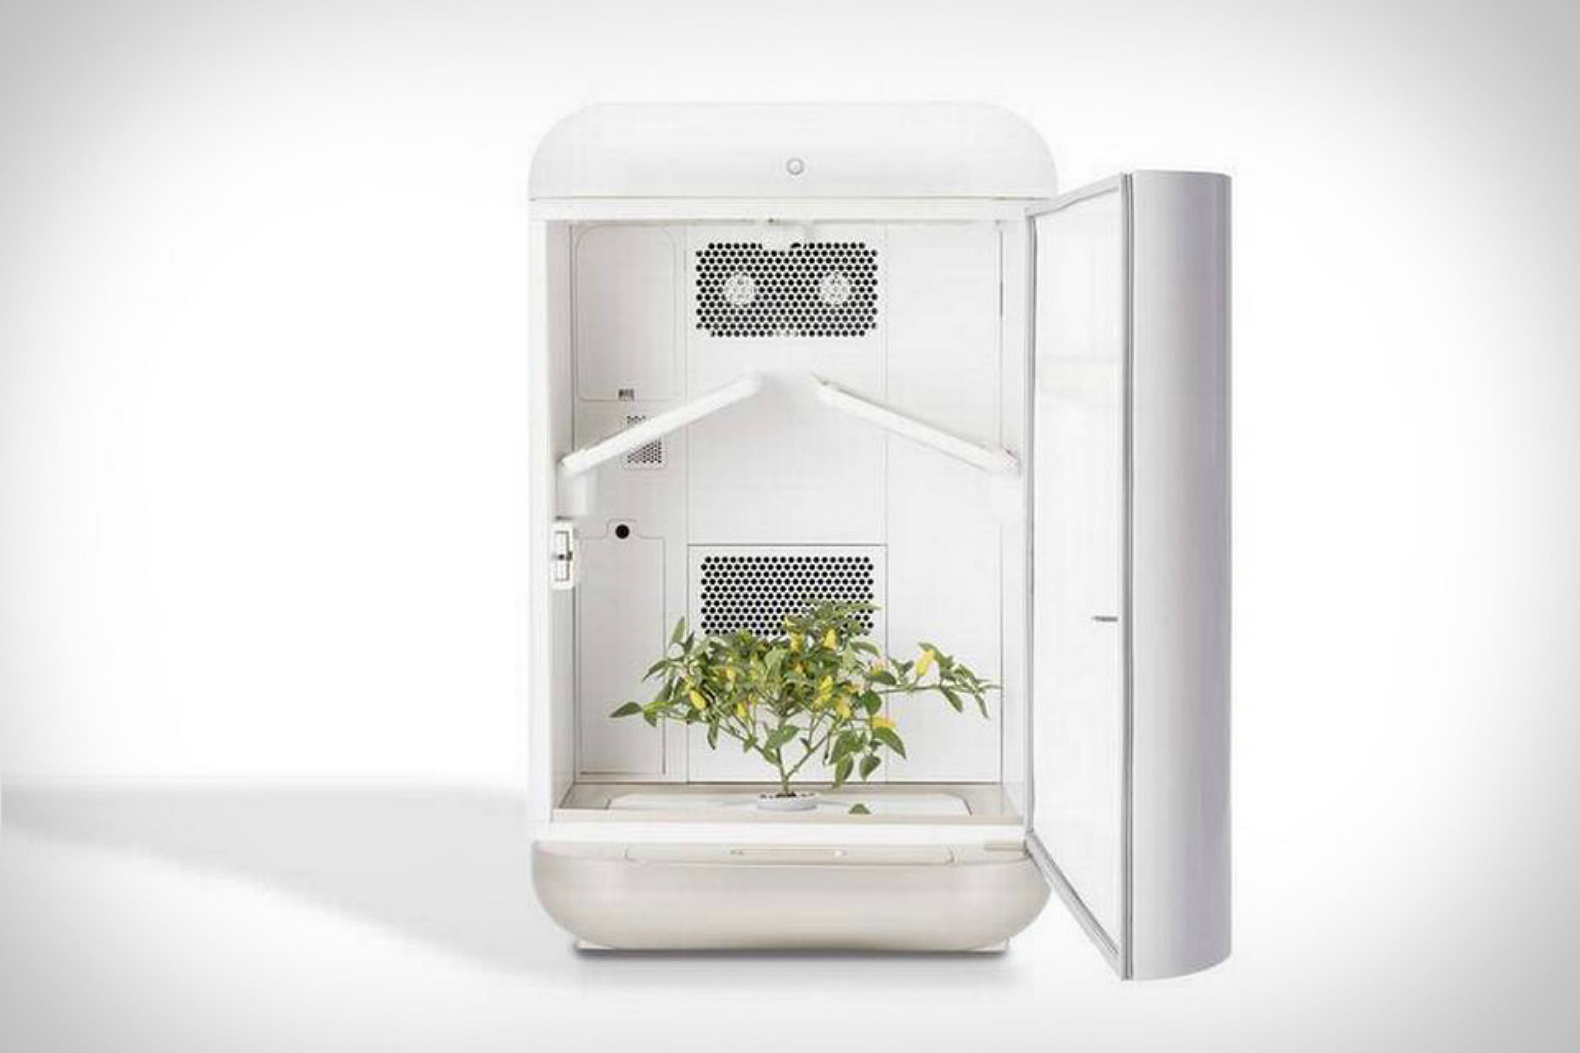 Seedo Is A Chic Minimalist Hydroponic Garden That Makes